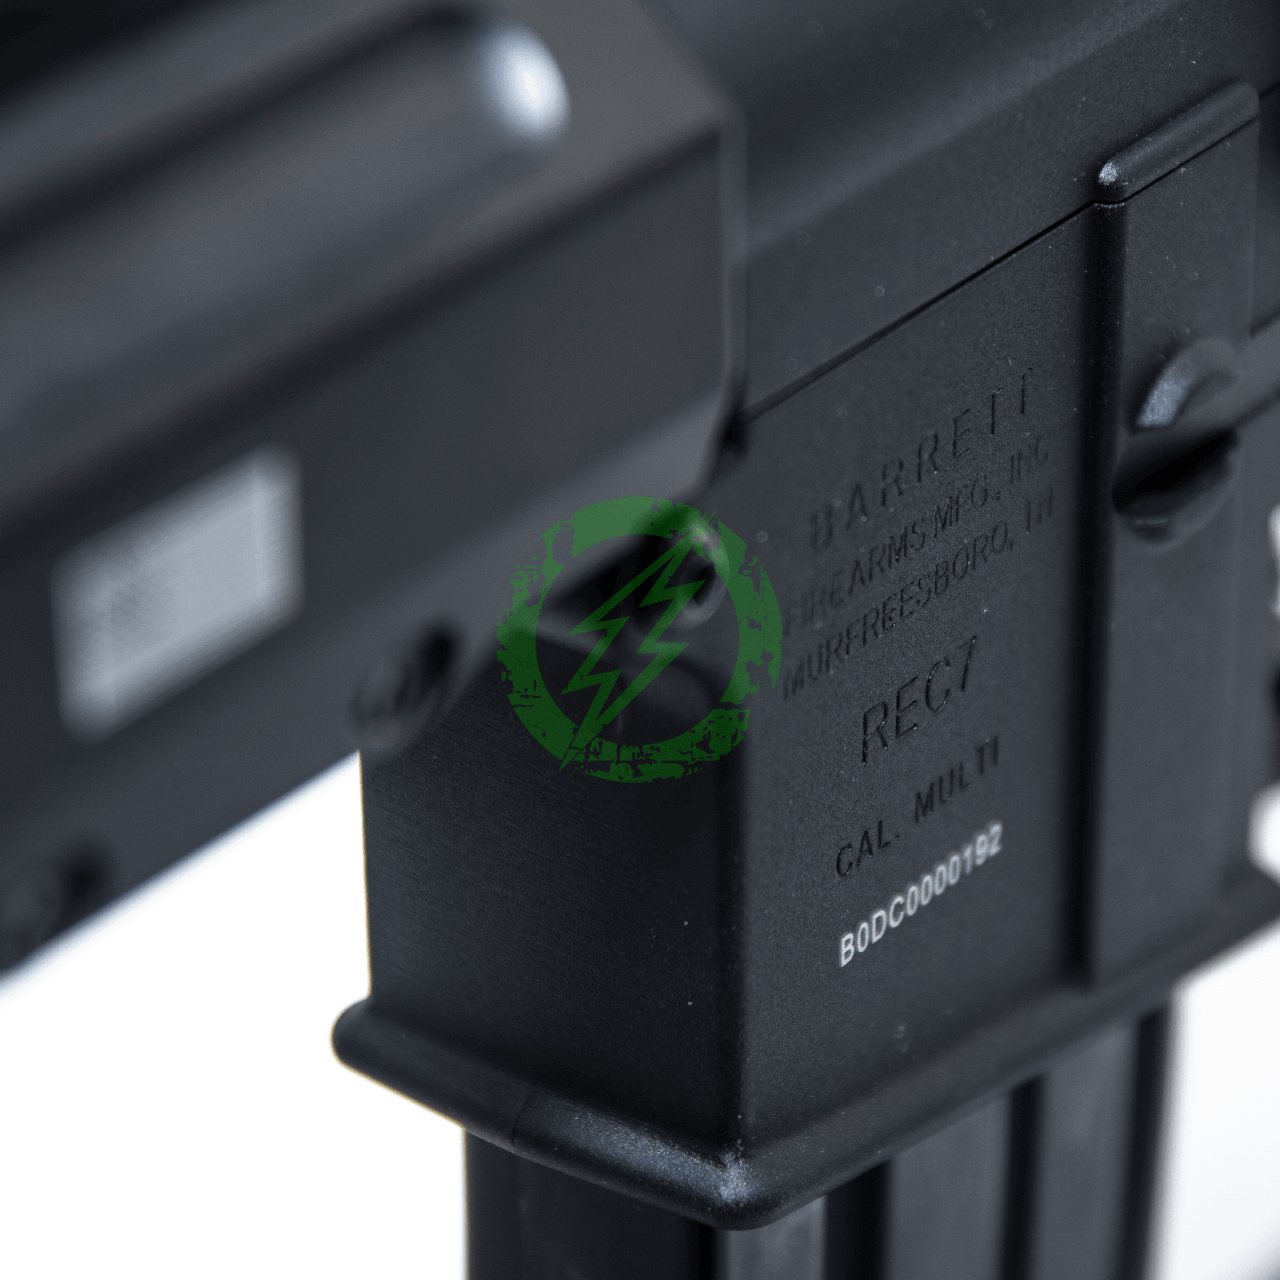 EMG Krytac Barrett Firearms REC7 DI AR15 AEG Training Rifle trademarks